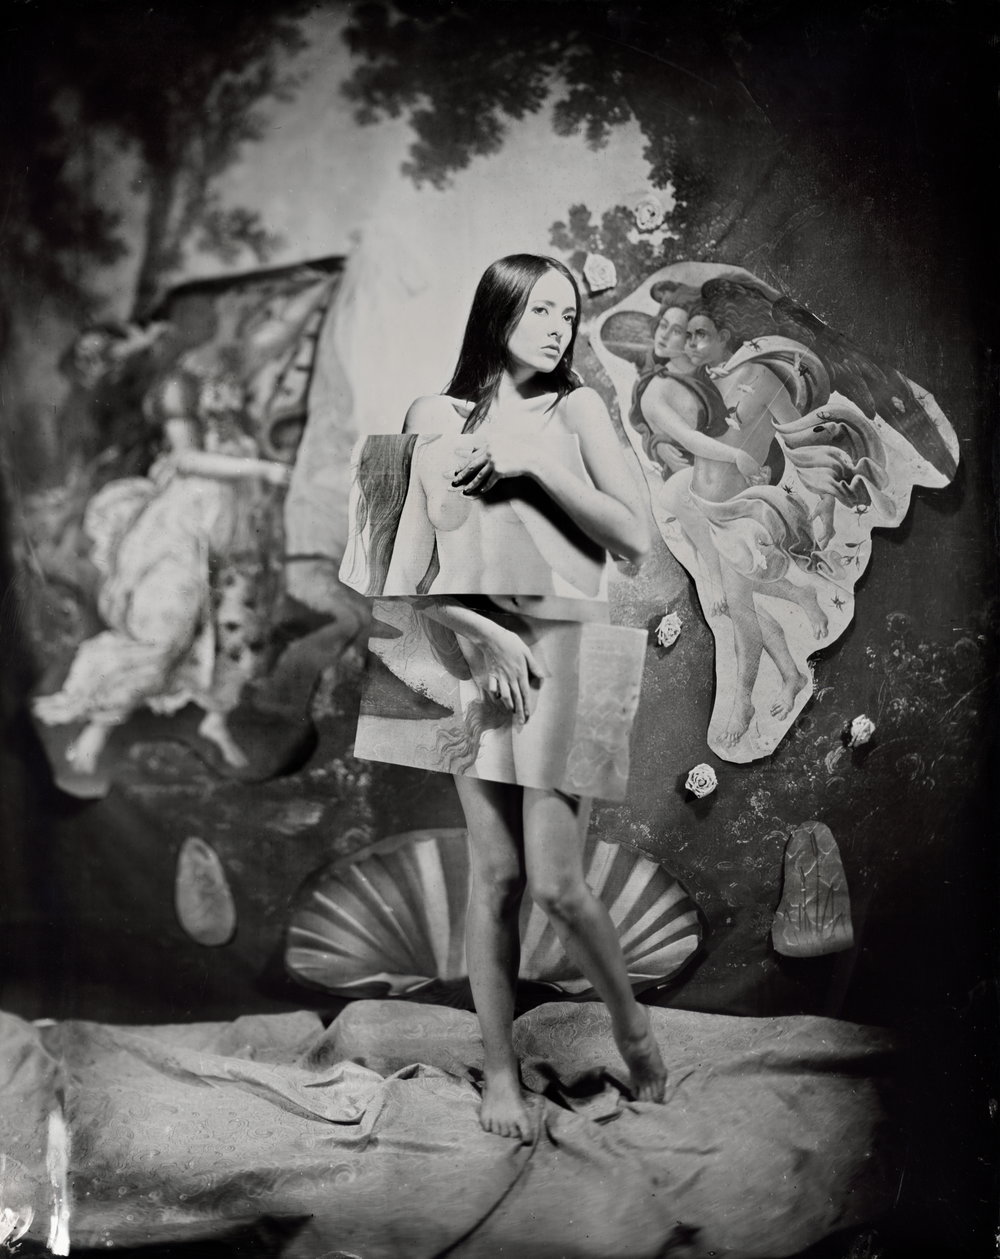 Valeria (New Births Series) - By: Jorge Luis Chavarria Aleman  wetplateguatemala.com